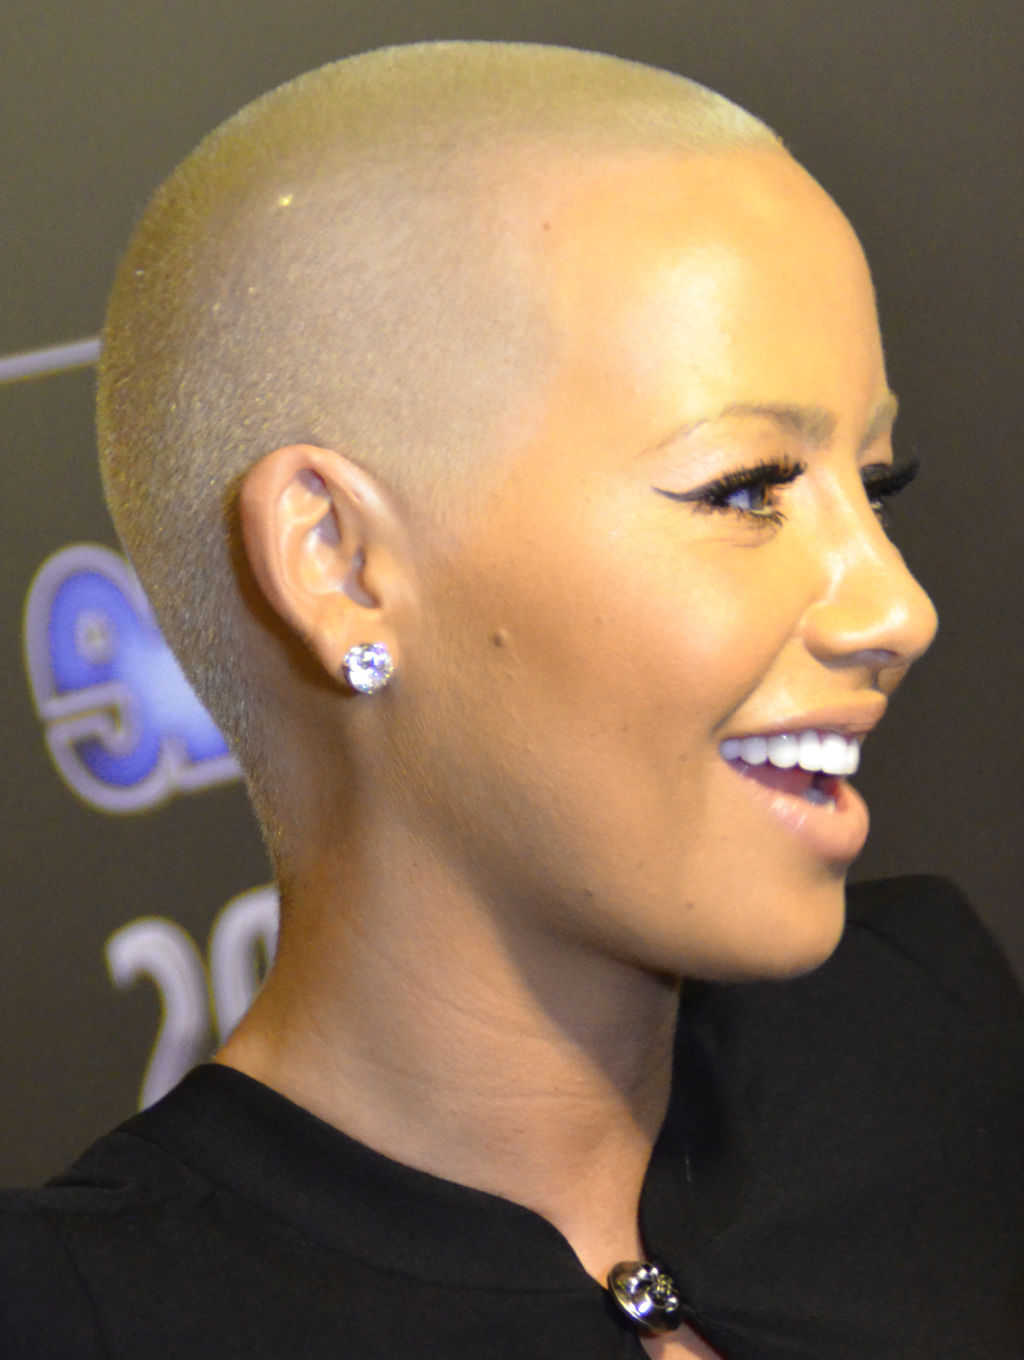 Superb Amber Rose New Hairstyle My Real Style Short Hairstyles Gunalazisus